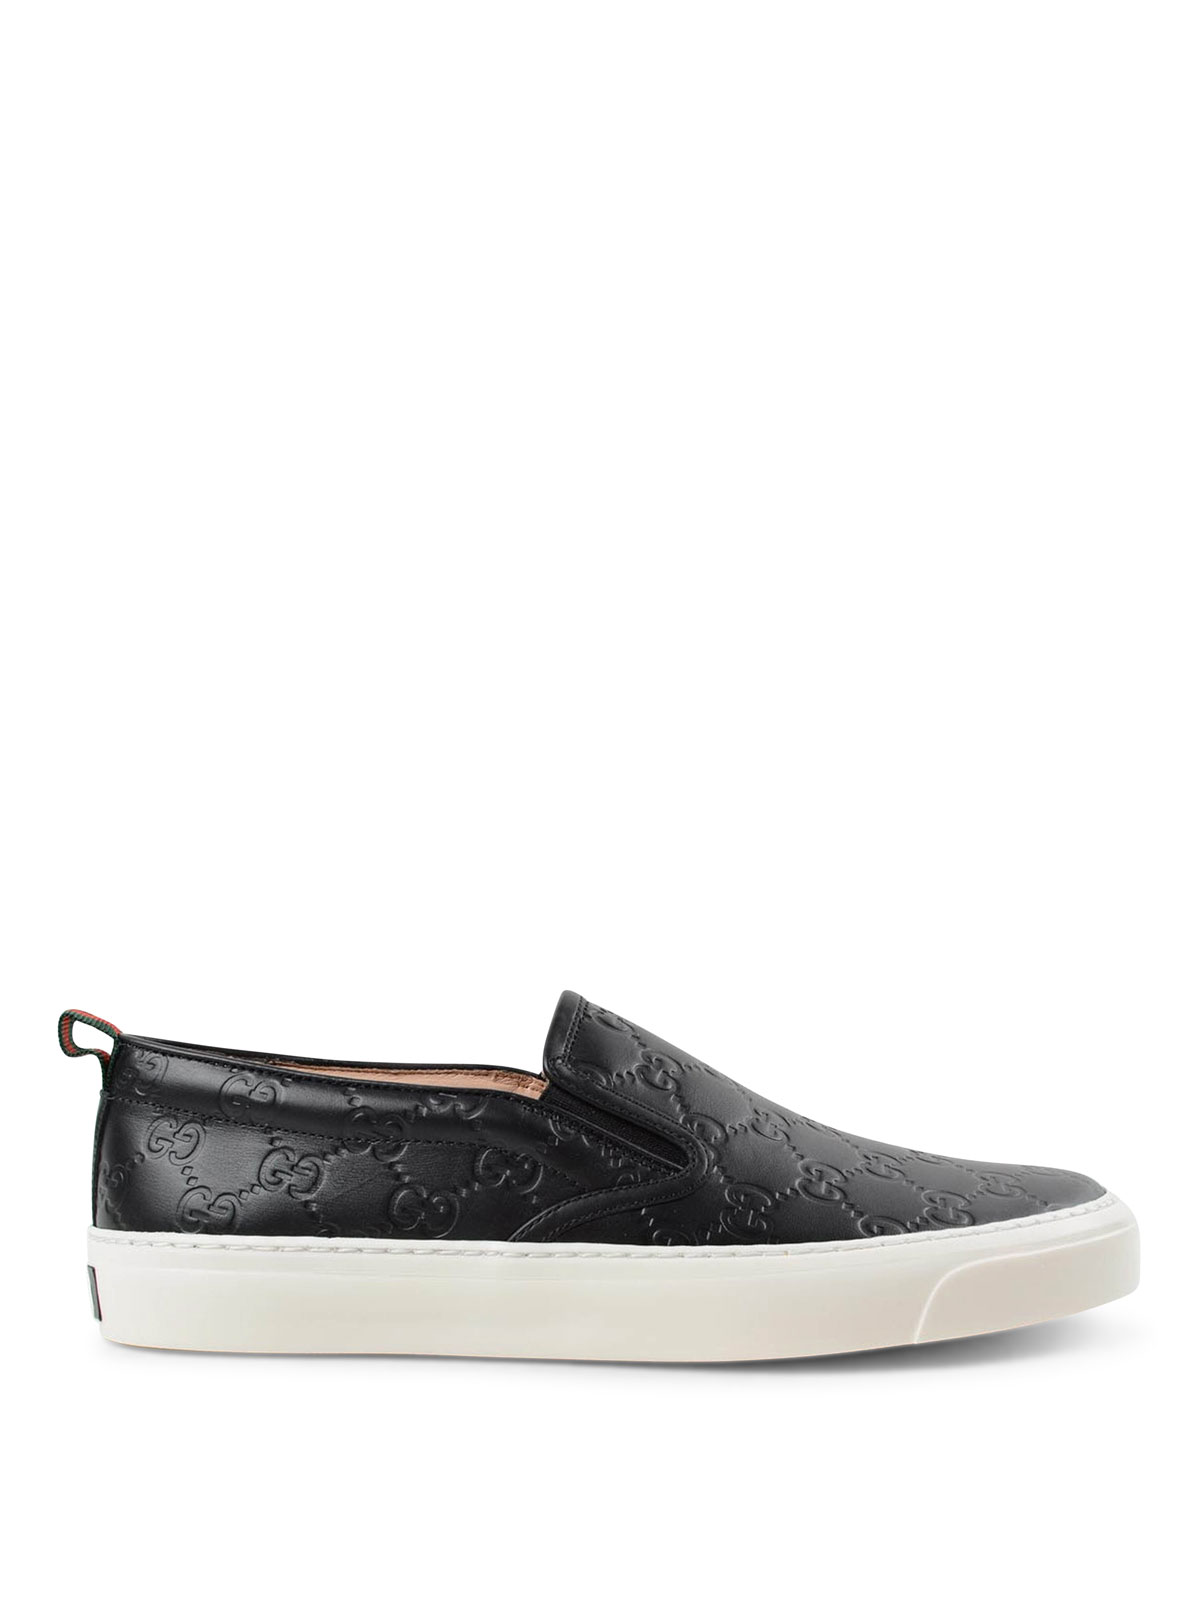 Gucci - Gucci Signature leather slip-ons - trainers - 408510 CWCEO 1174